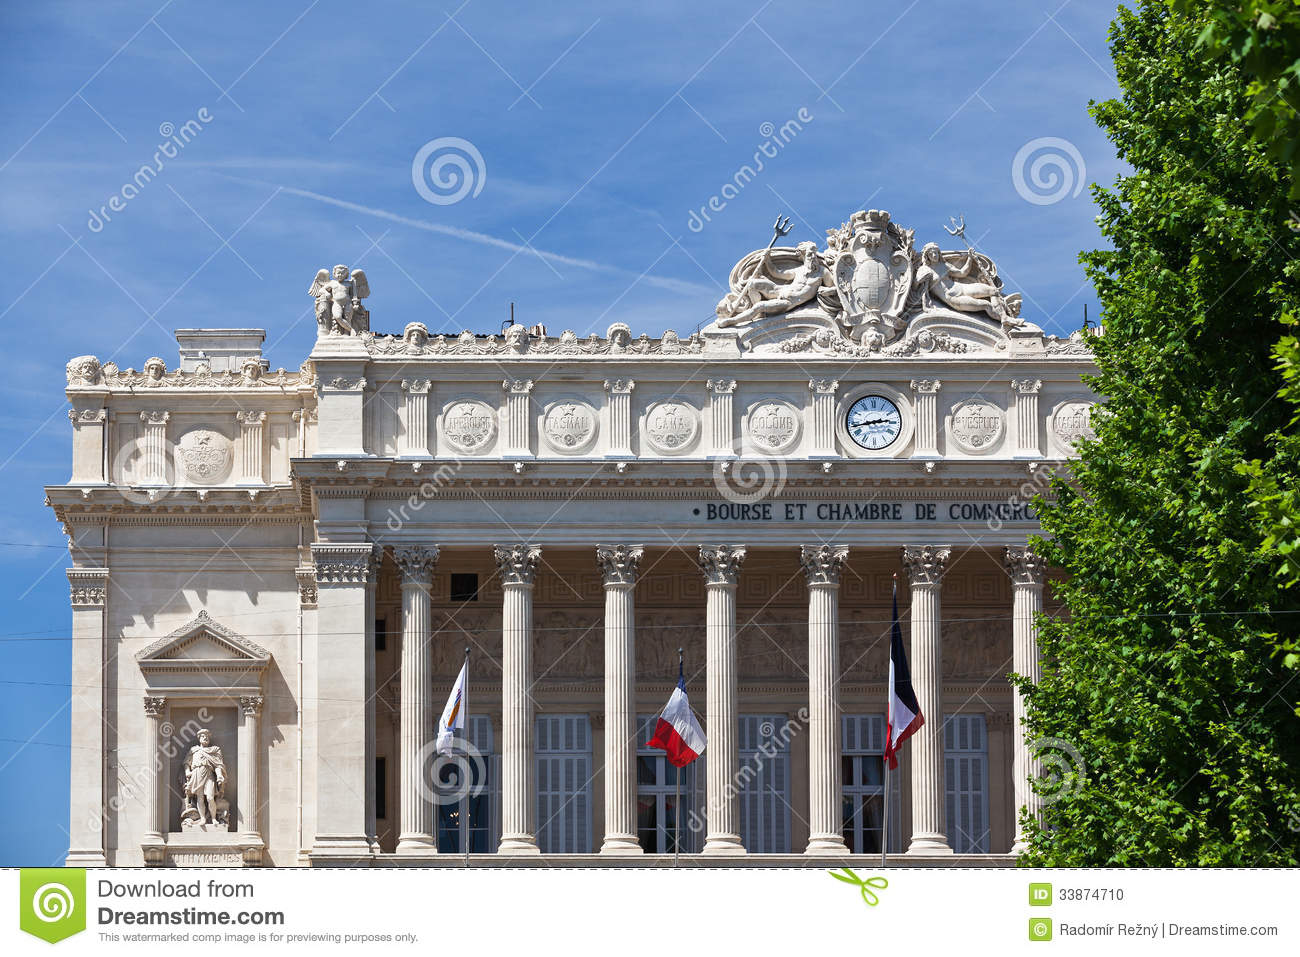 Bourse et chambre de commerce in marseille stock photo for Chambre de commerce besancon